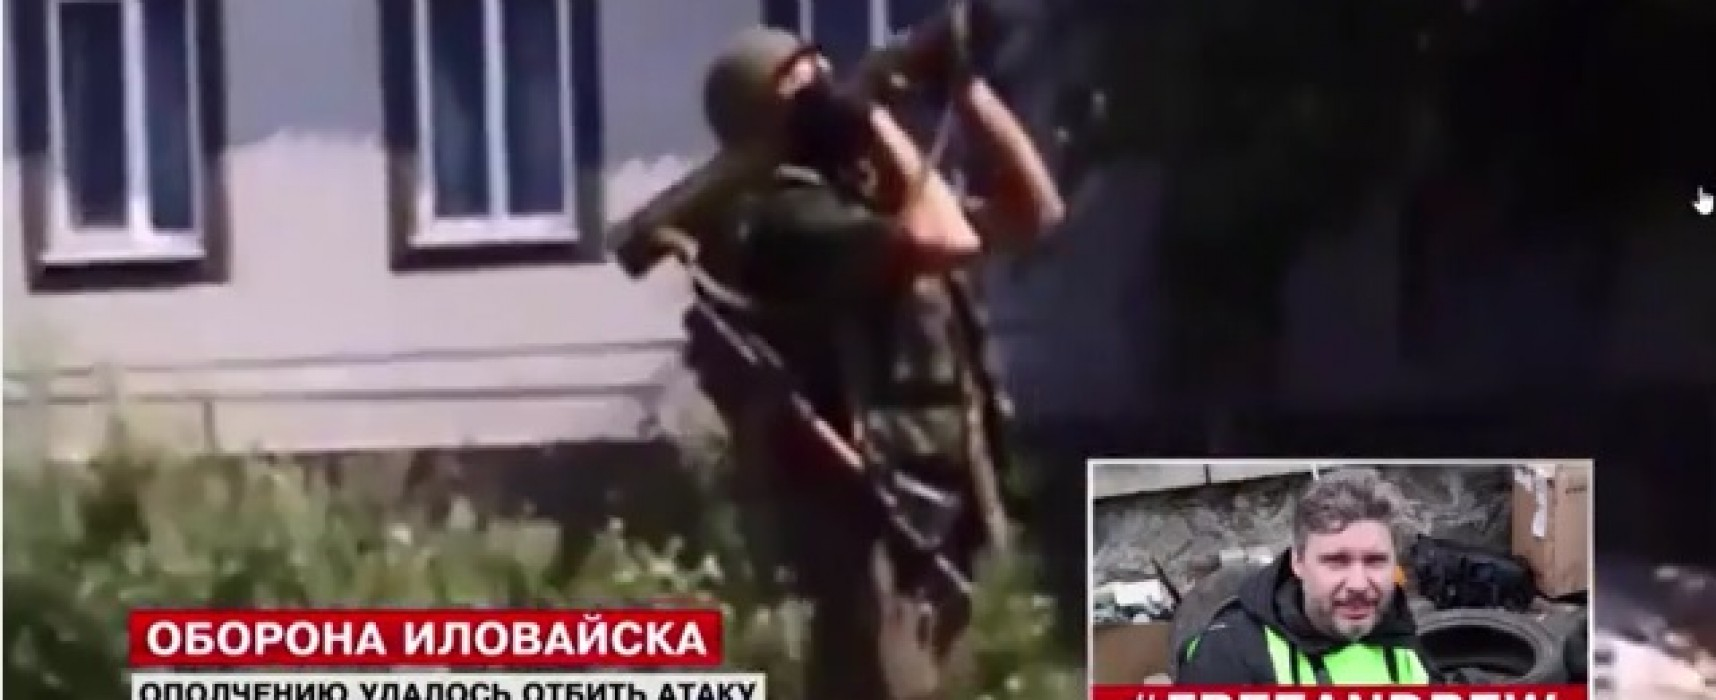 The lie of LifeNews: Images of Ukrainian Army Bombardment in Ilovaisk